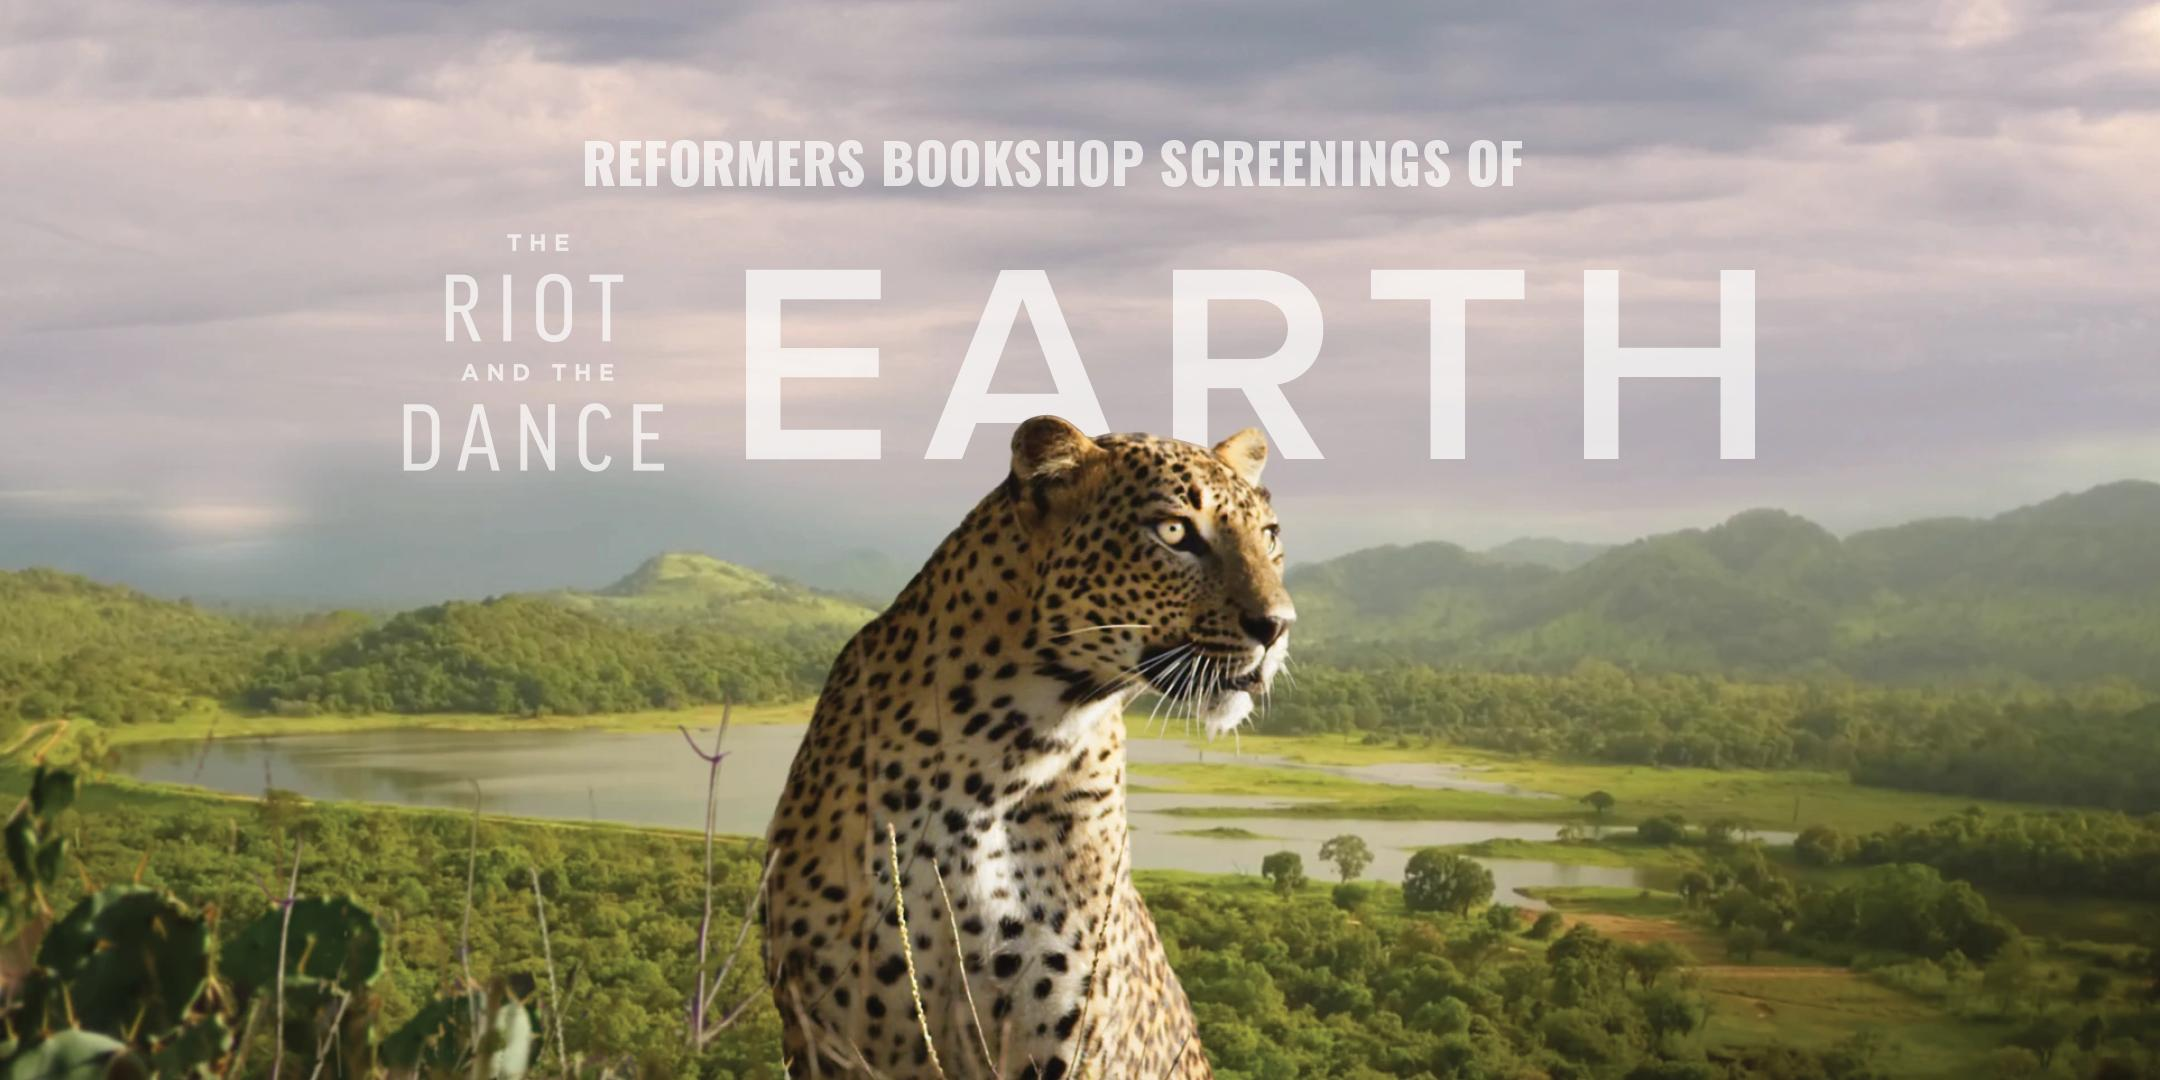 The Riot and the Dance: Earth -- Screenings at Reformers Bookshop